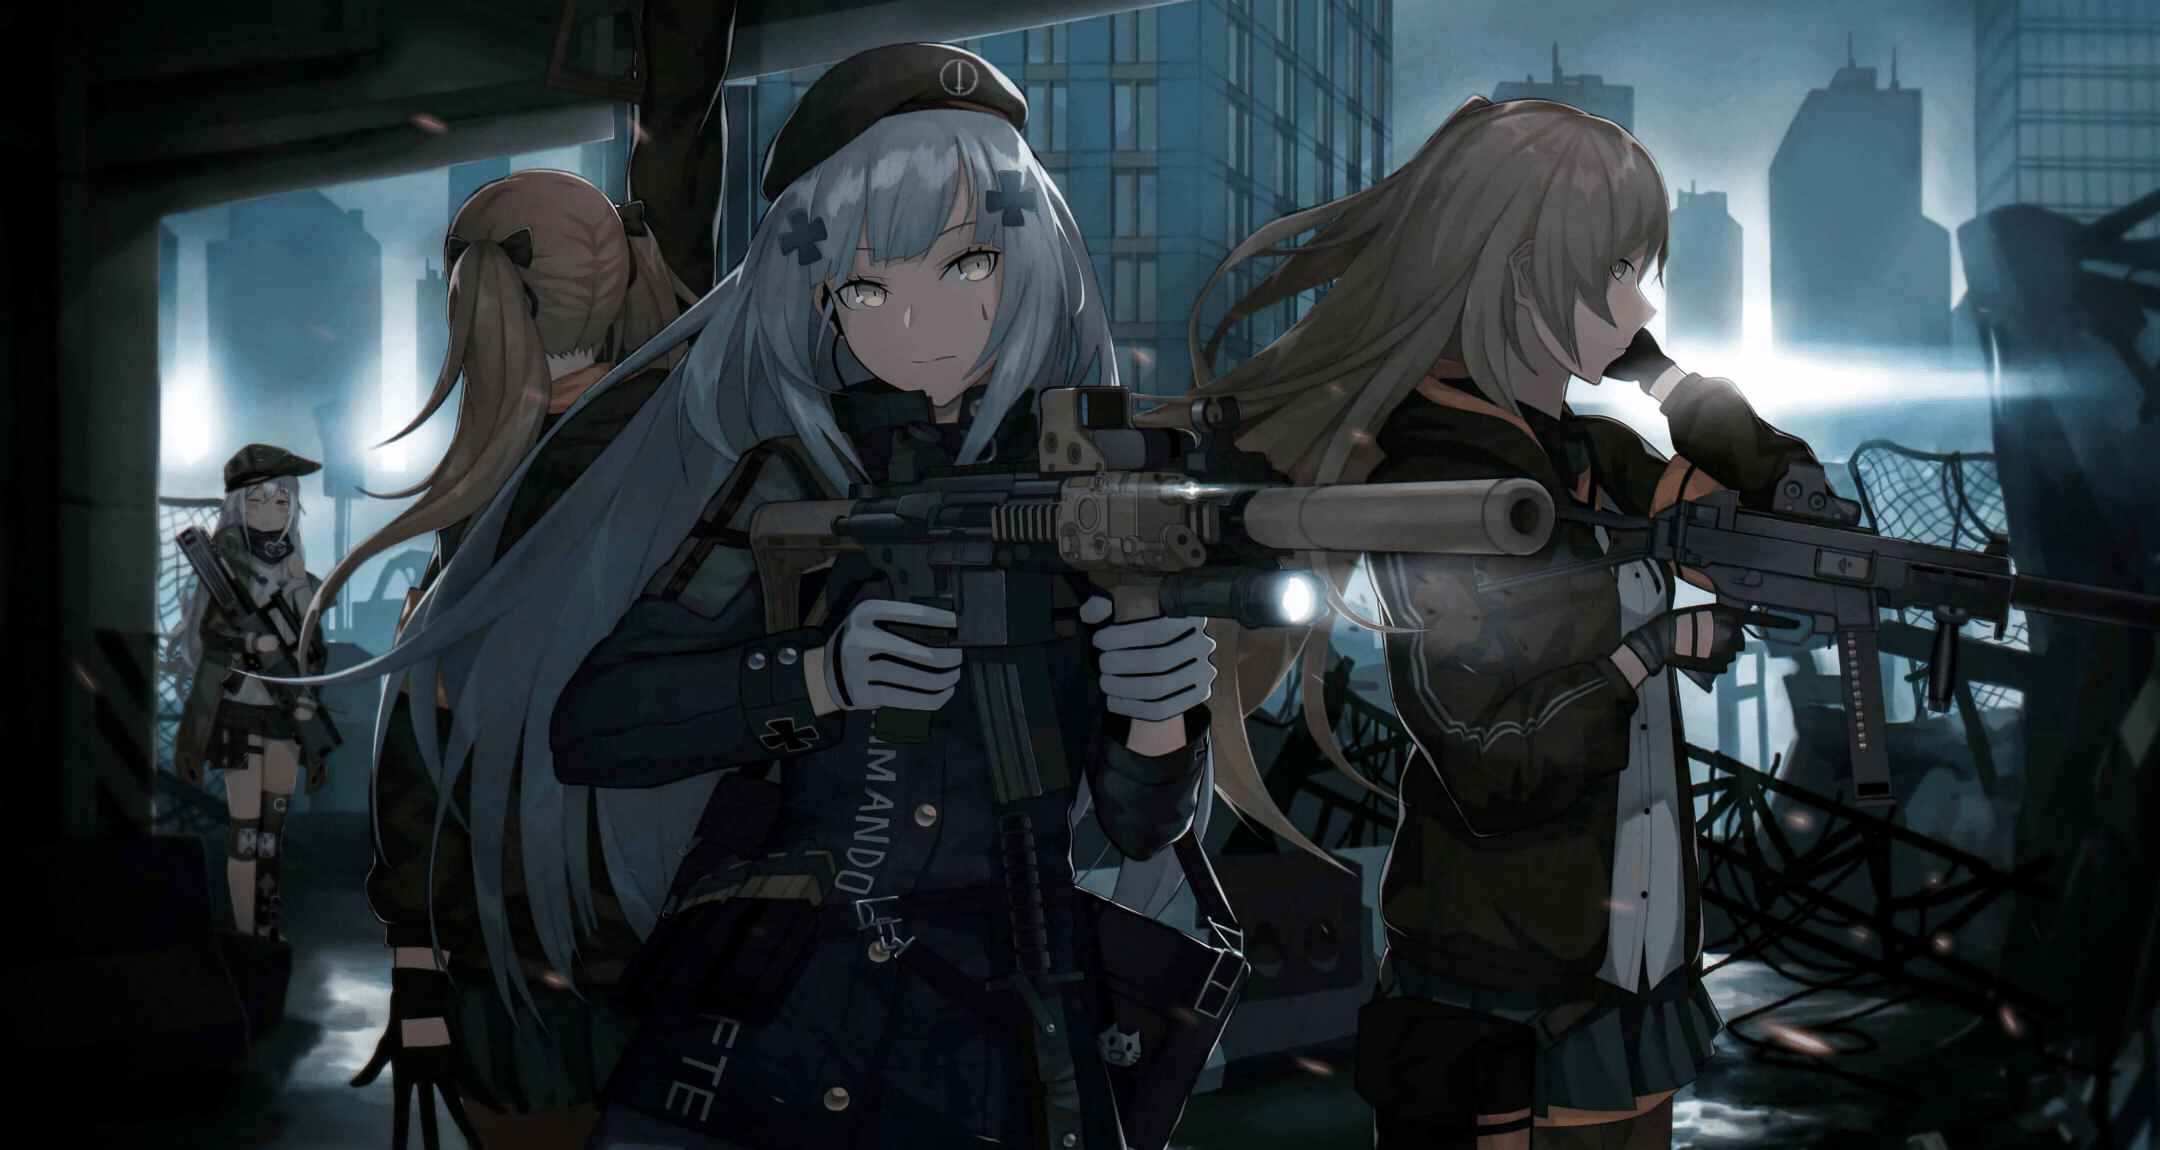 Wallpaper Engine Gun Anime Girl Girls Frontline Hd Wallpaper Background Image